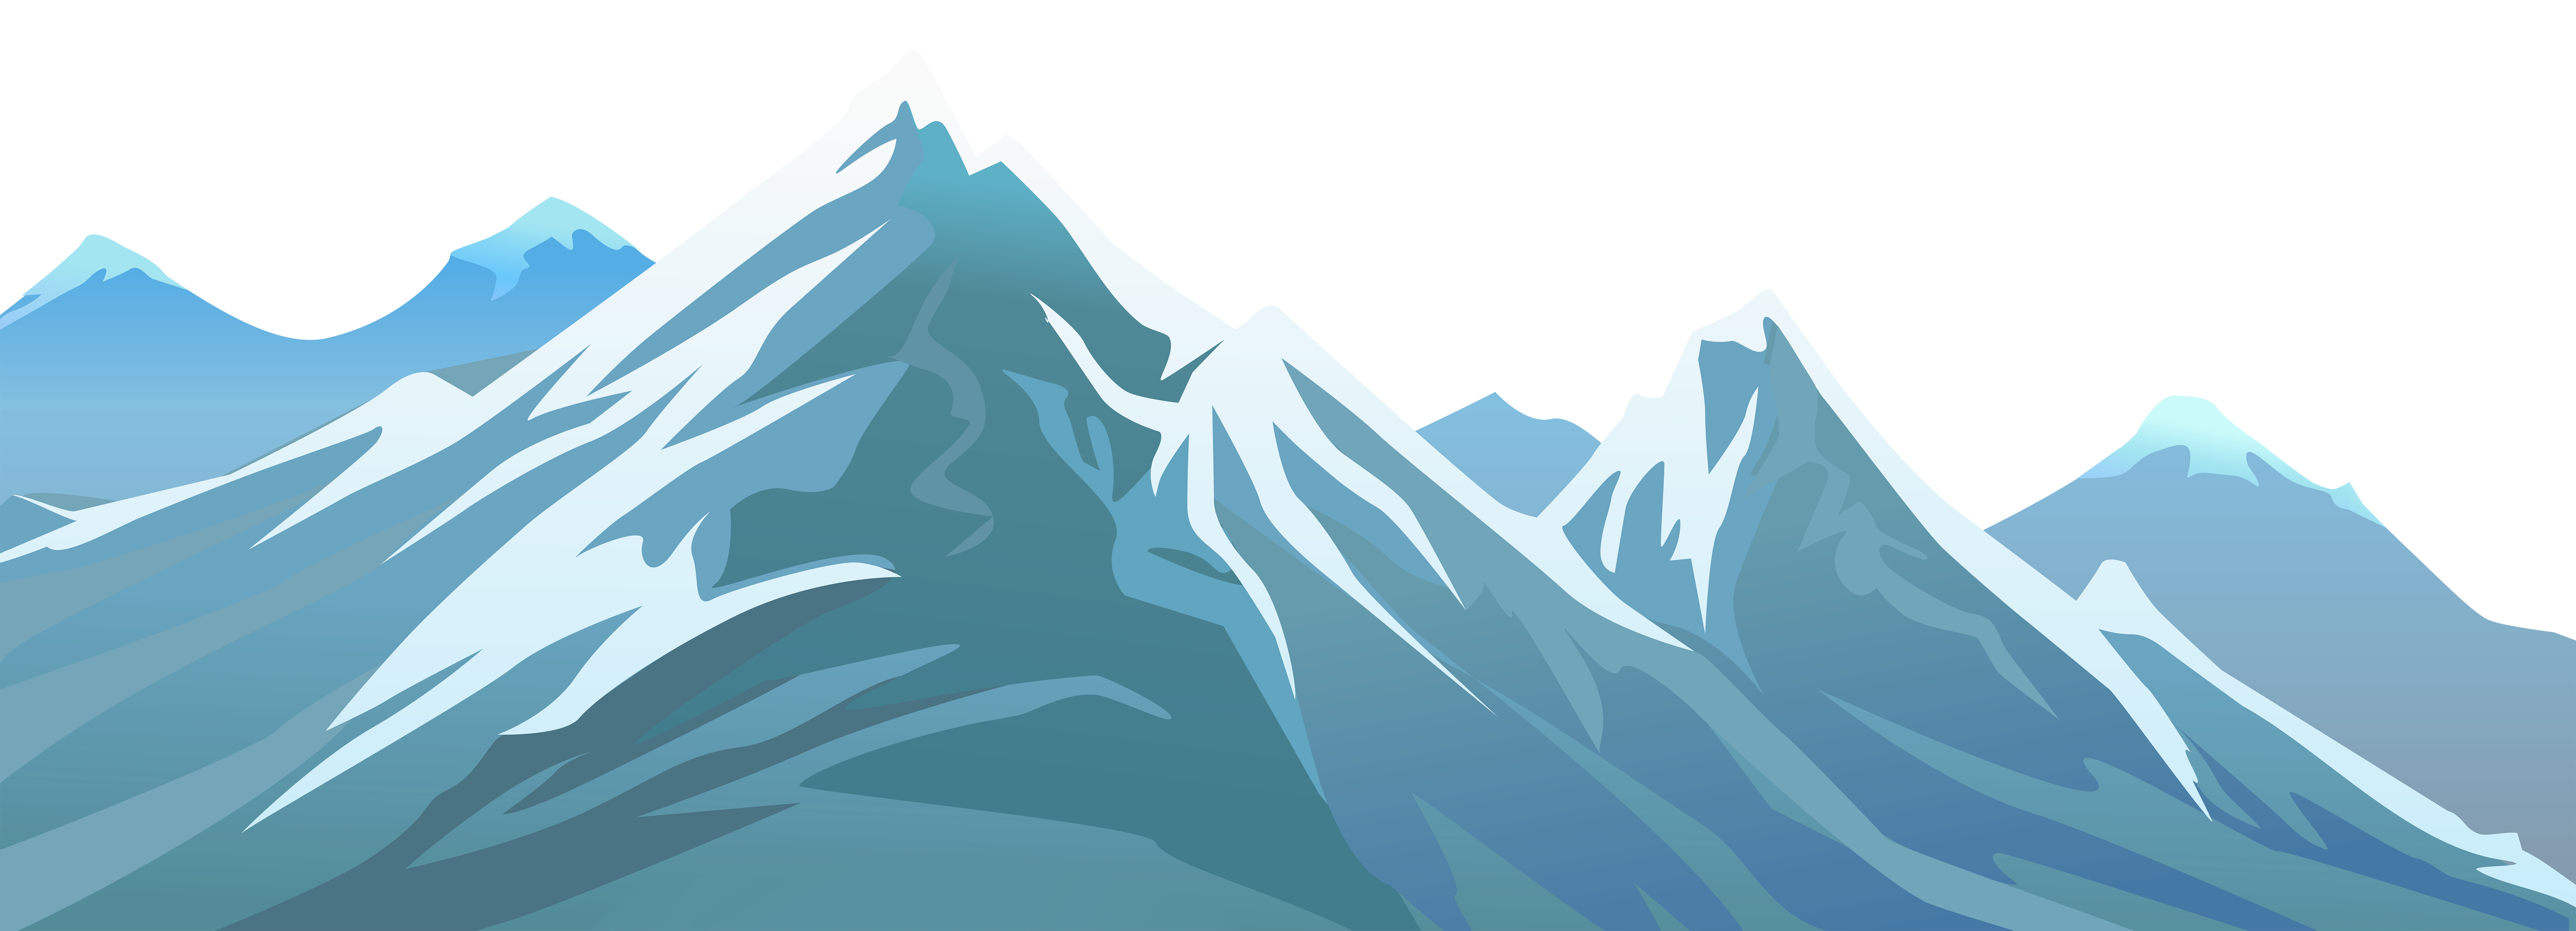 Snowy transparent png clip. Clipart mountains mountain side